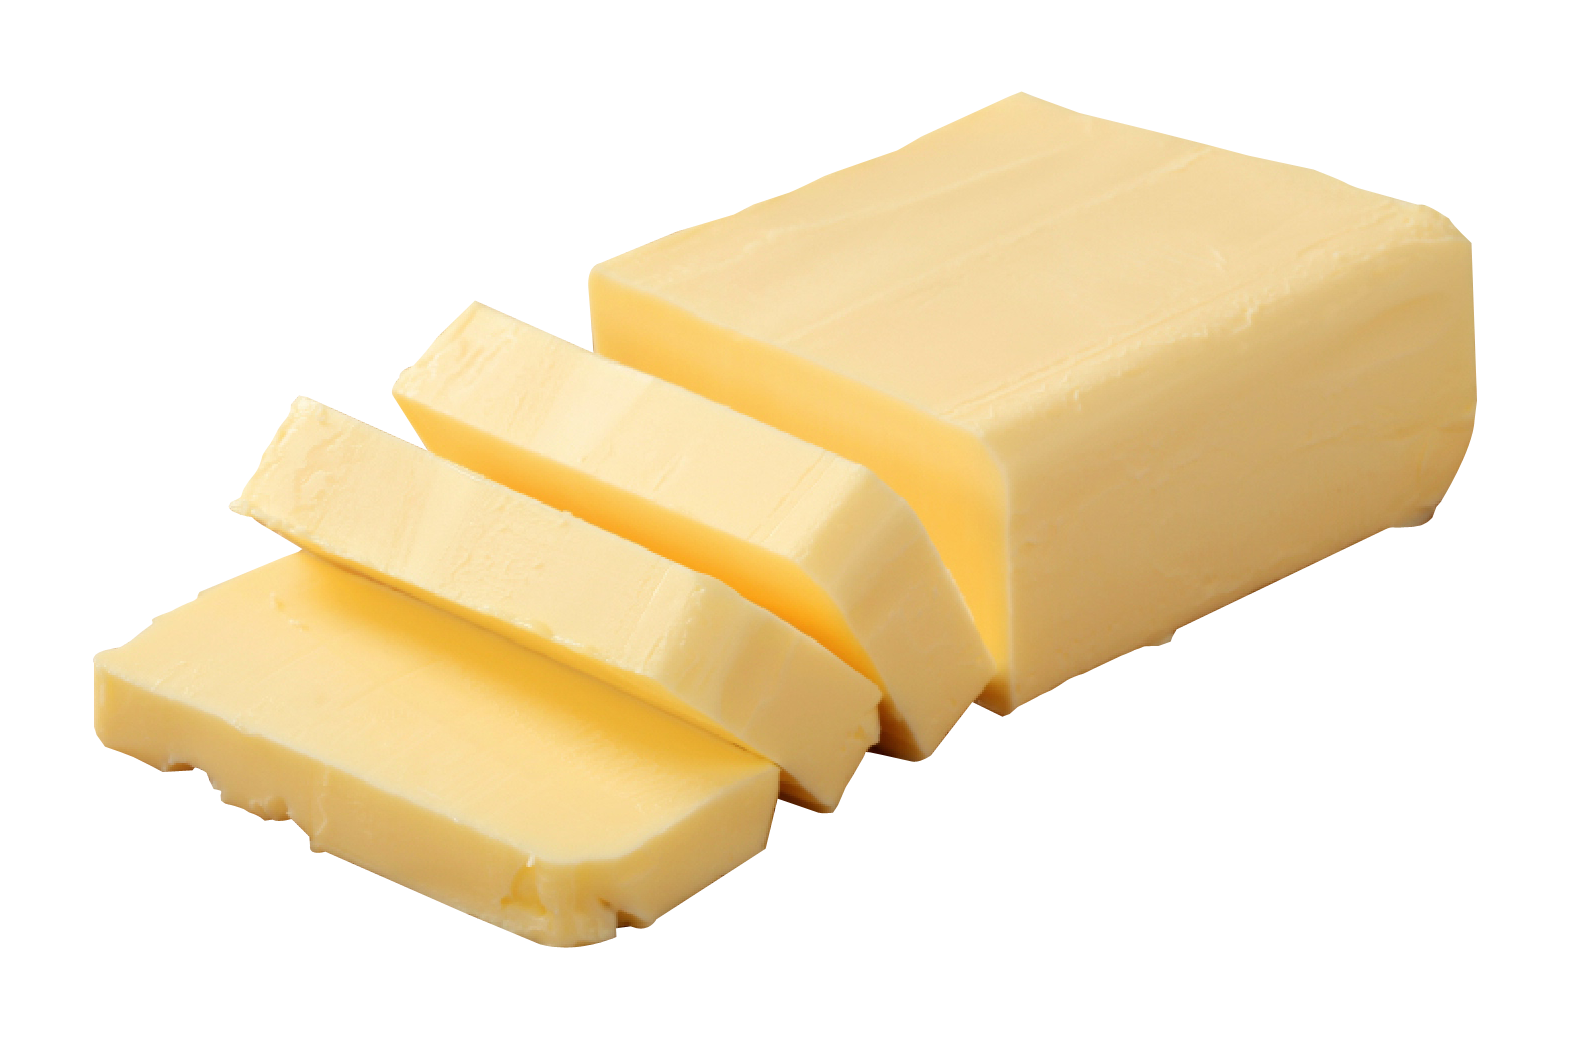 Butter clipart transparent Transparent PNG with Butter image